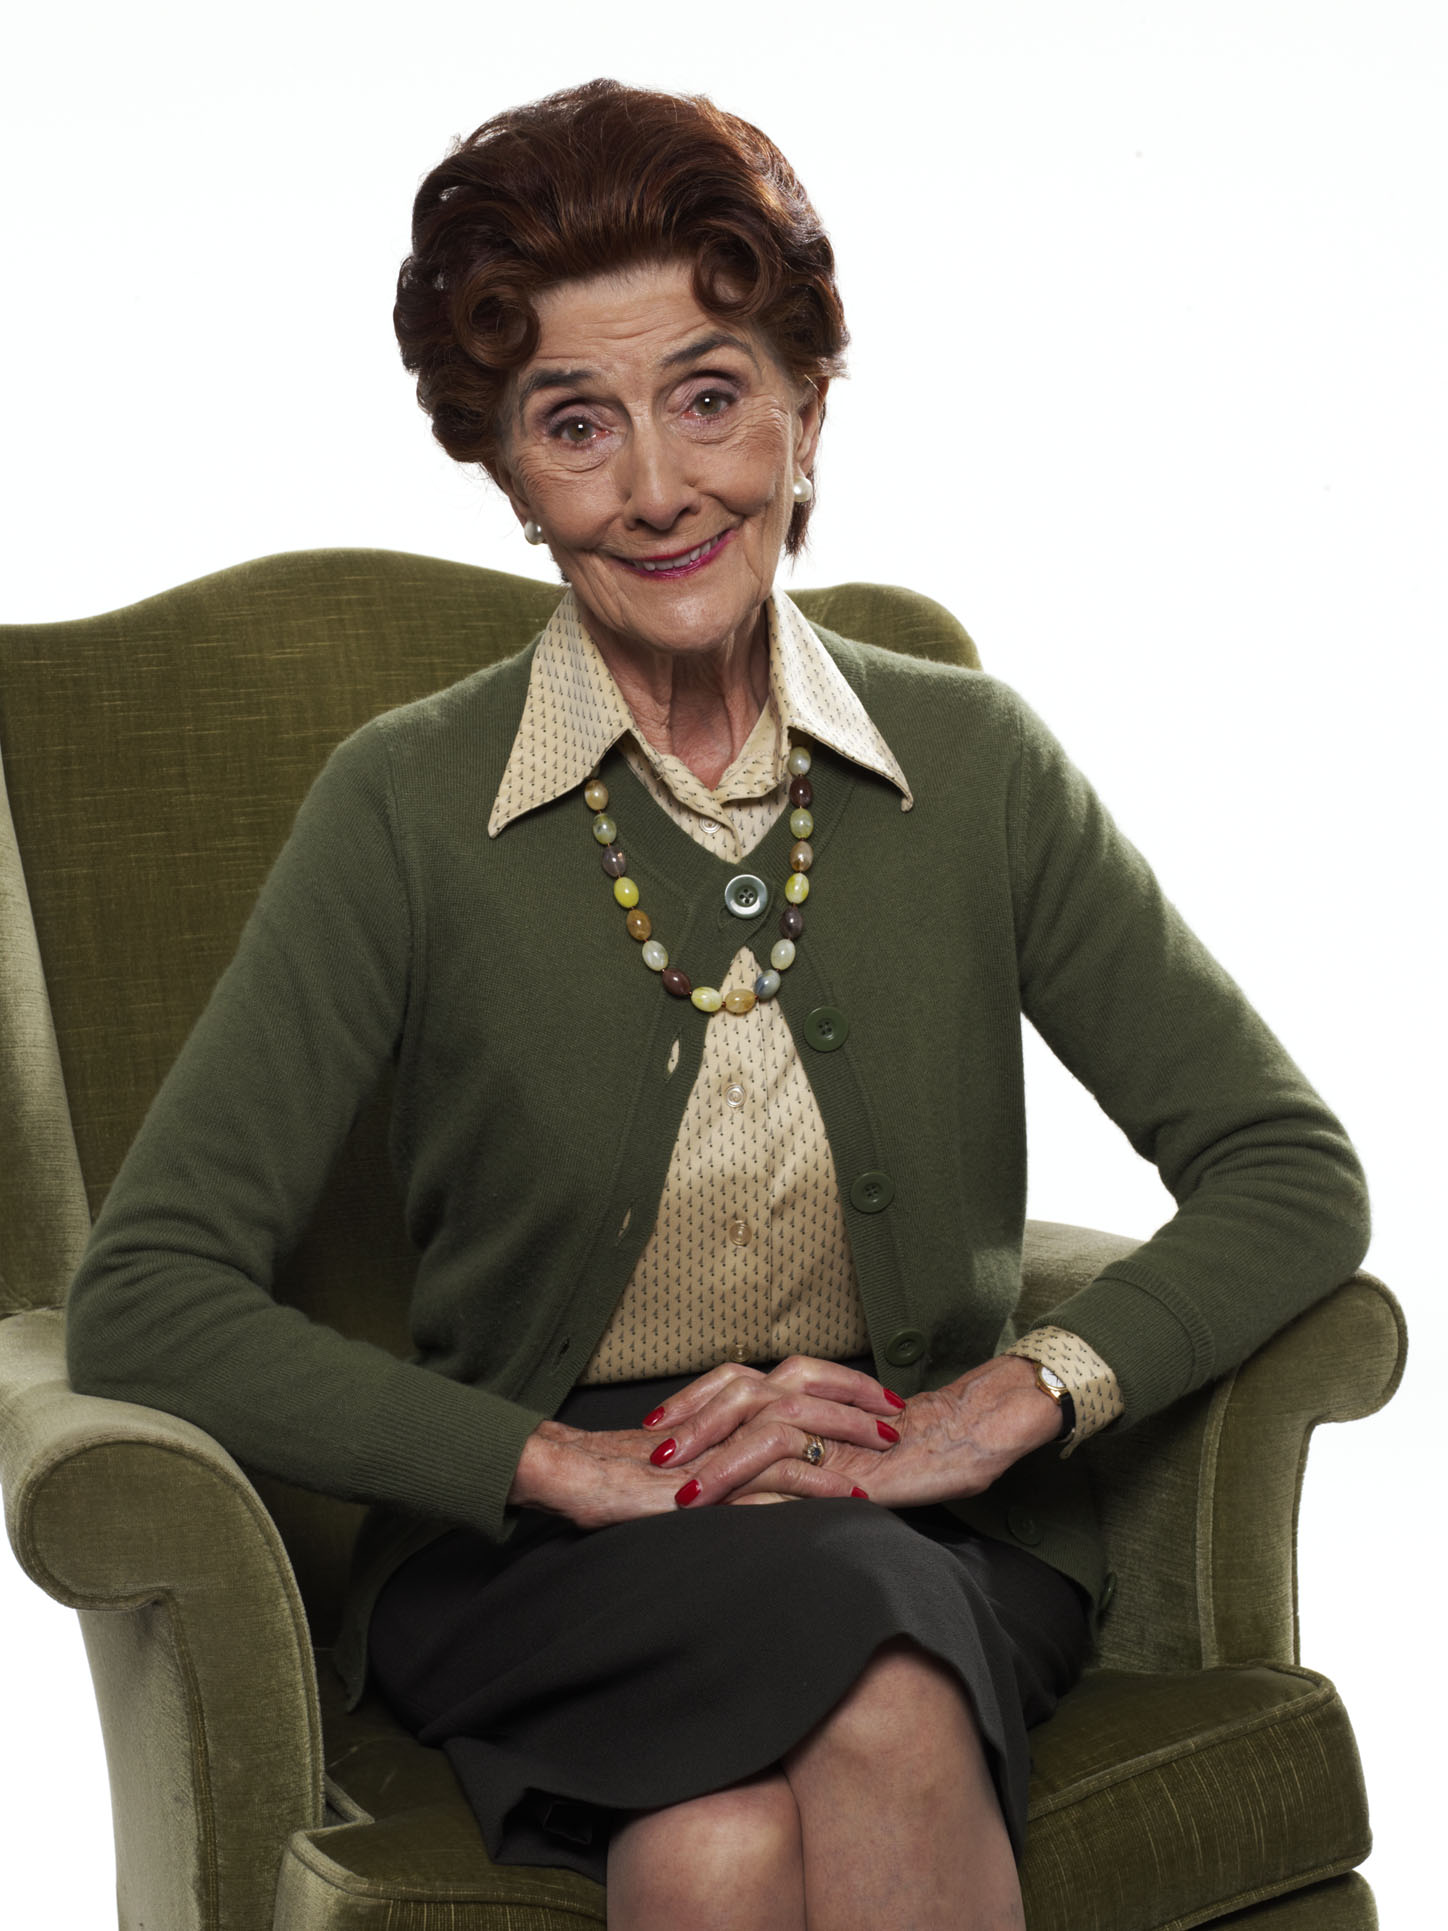 Dot Cotton real hair